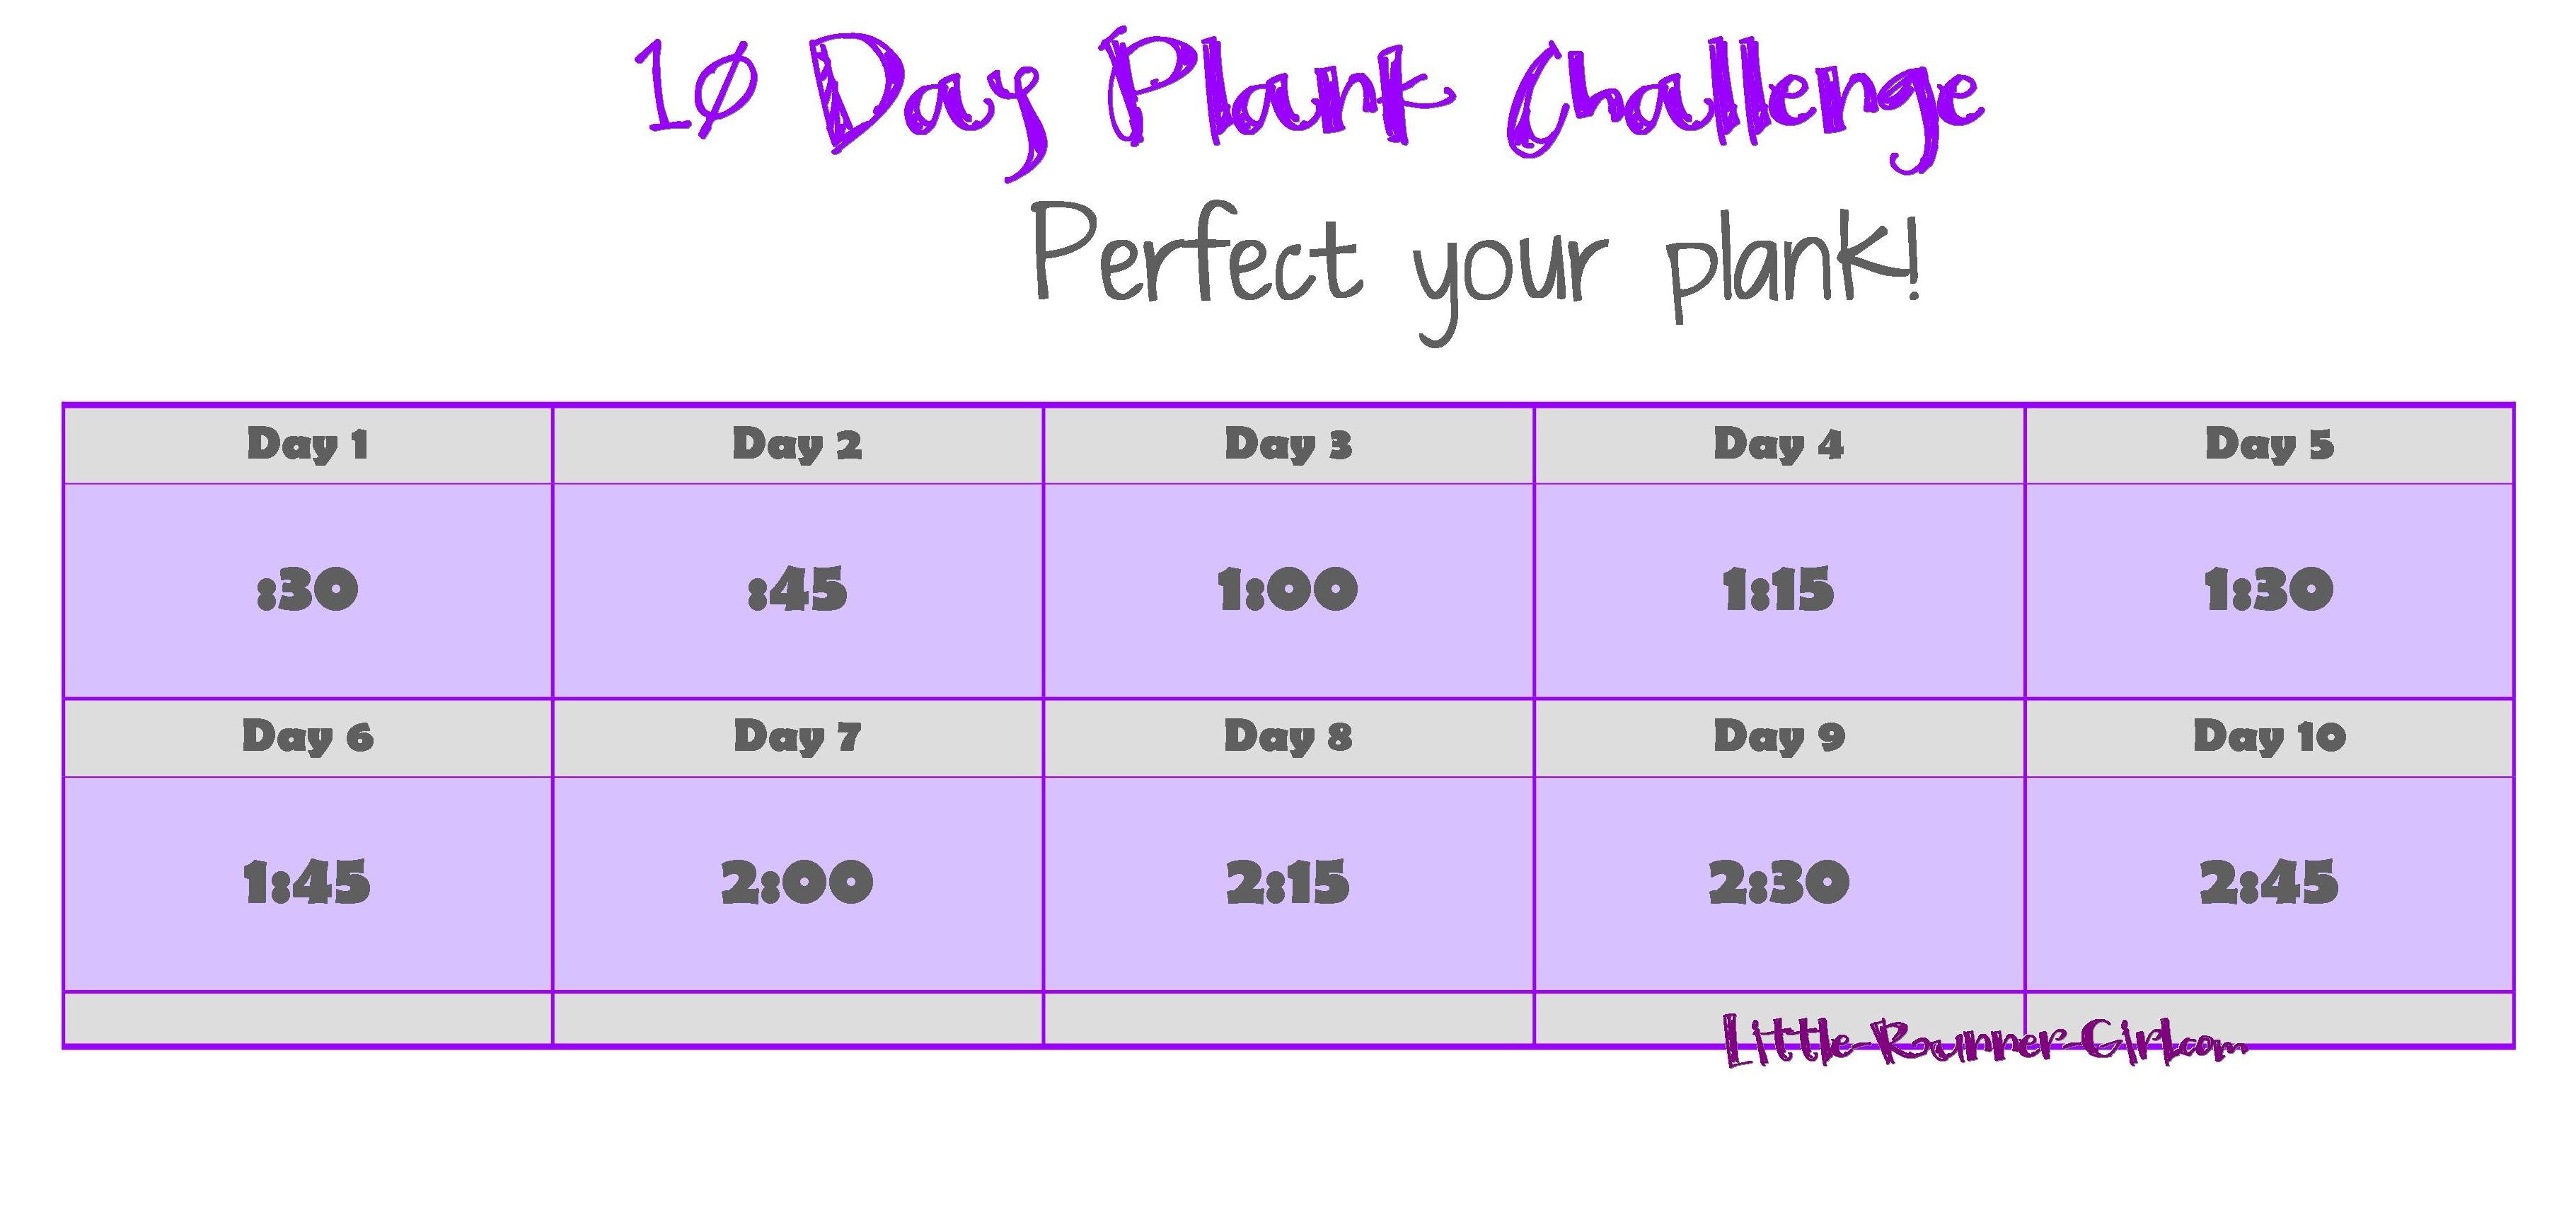 photograph relating to Printable Plank Challenge identified as Armed Amazing Working day 1: 10 working day plank trouble GNC Toned